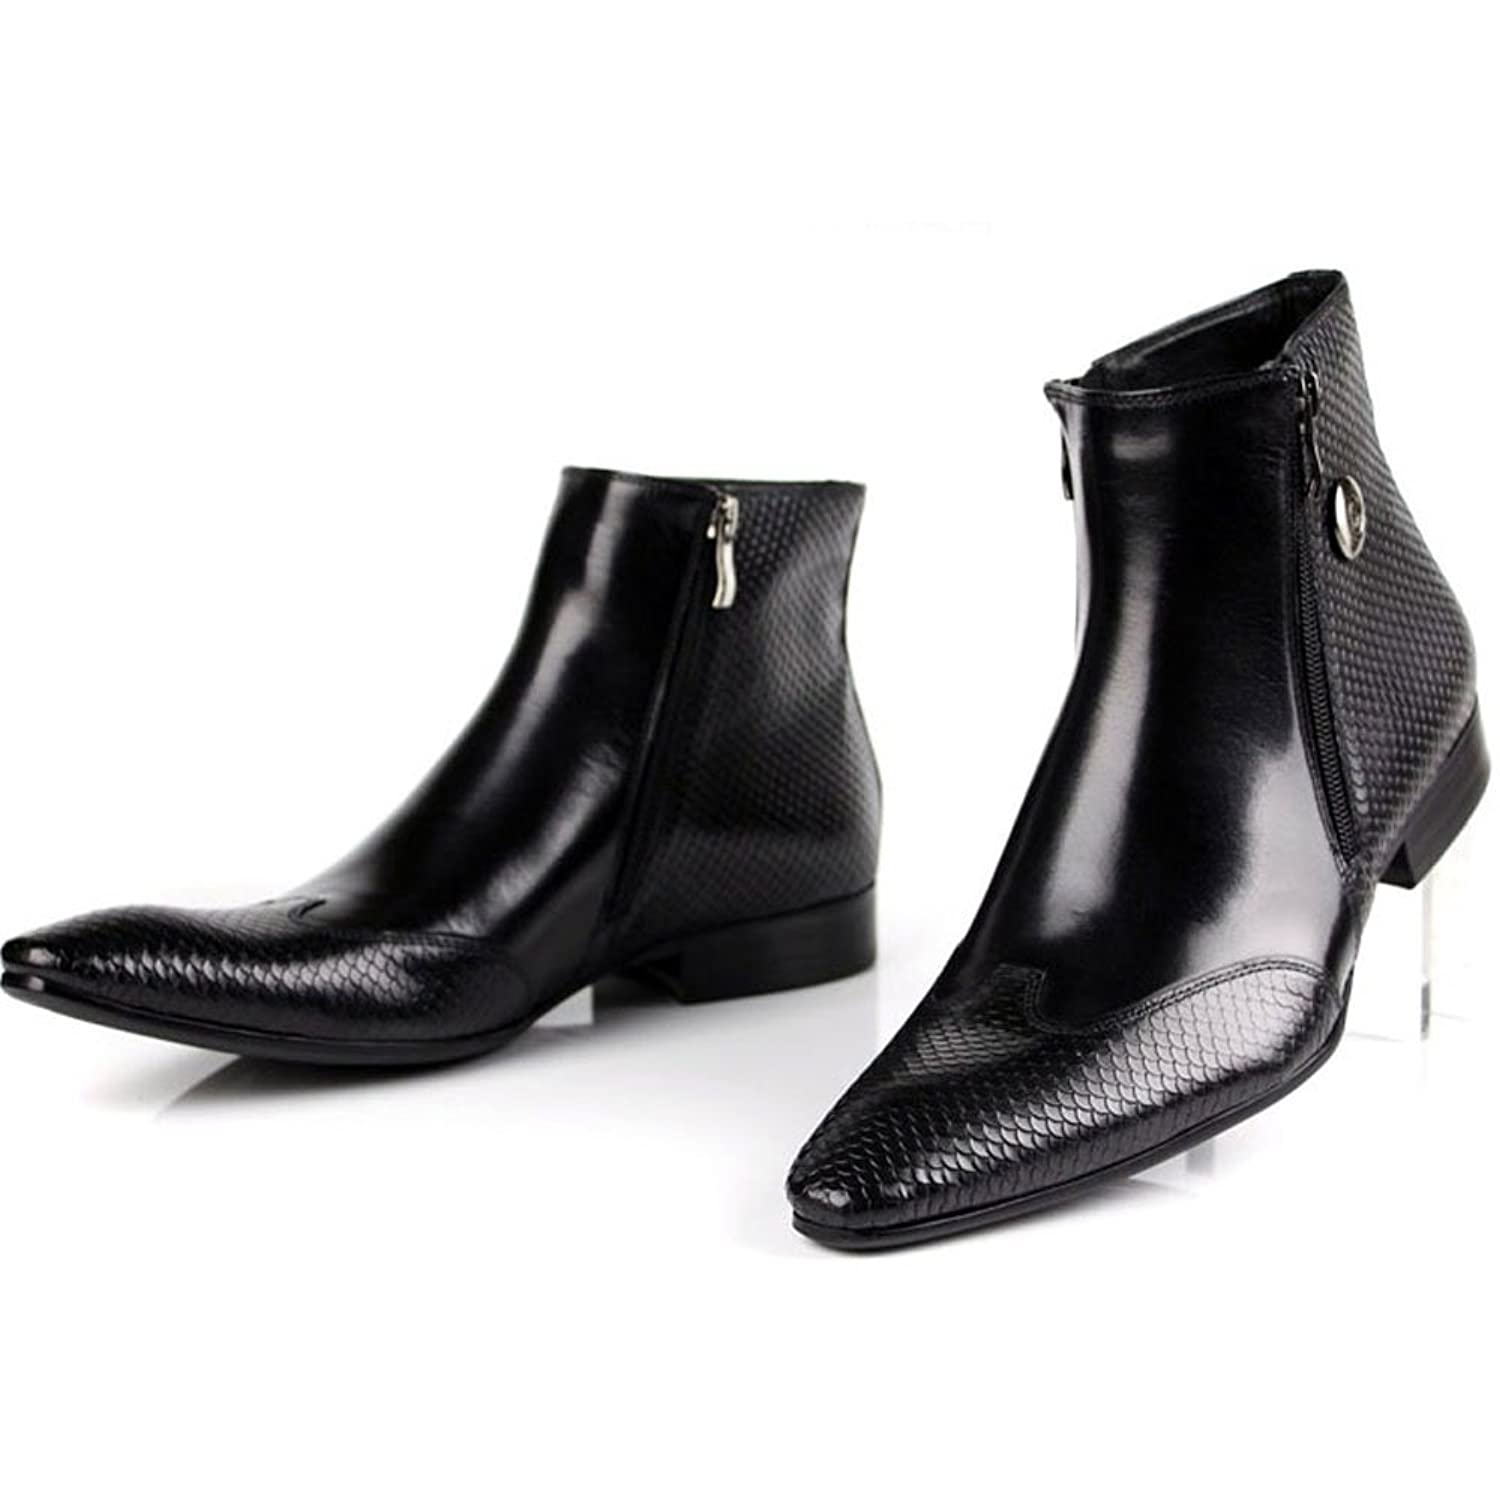 Men's Autumn And Winter Leather Pointed Zipper Waterproof High top Manual Ankle Boots Black